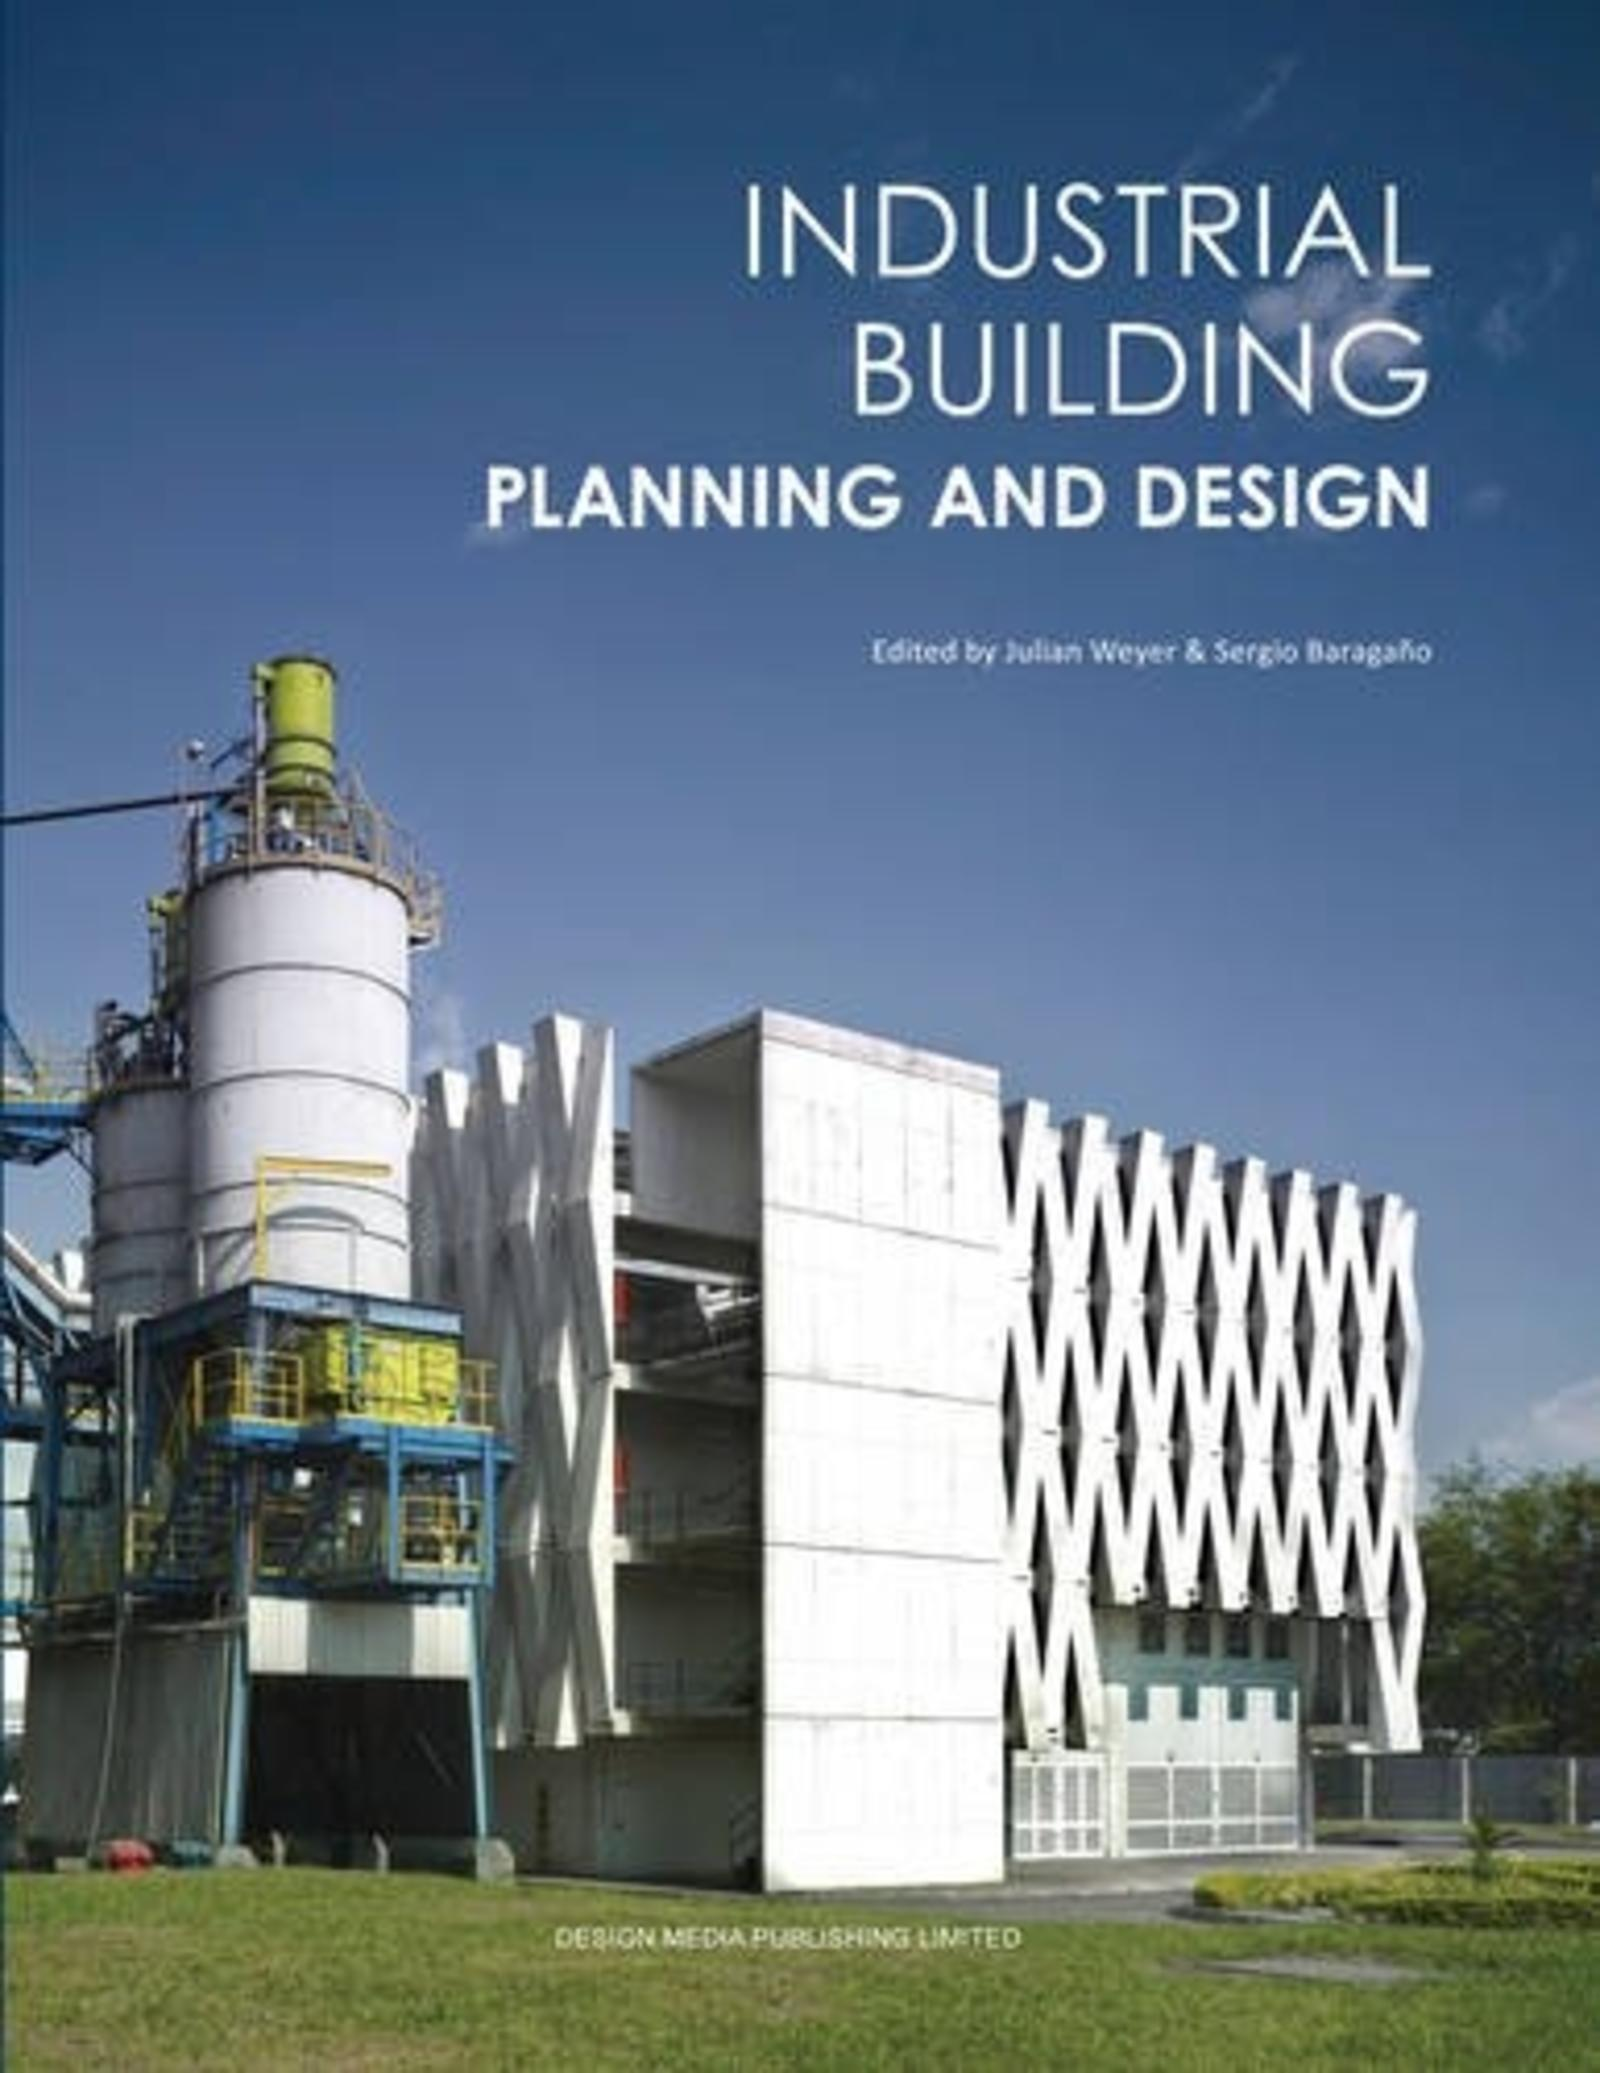 INDUSTRIAL BUILDING PLANNING AND DESIGN - PLANNING AN DESING.